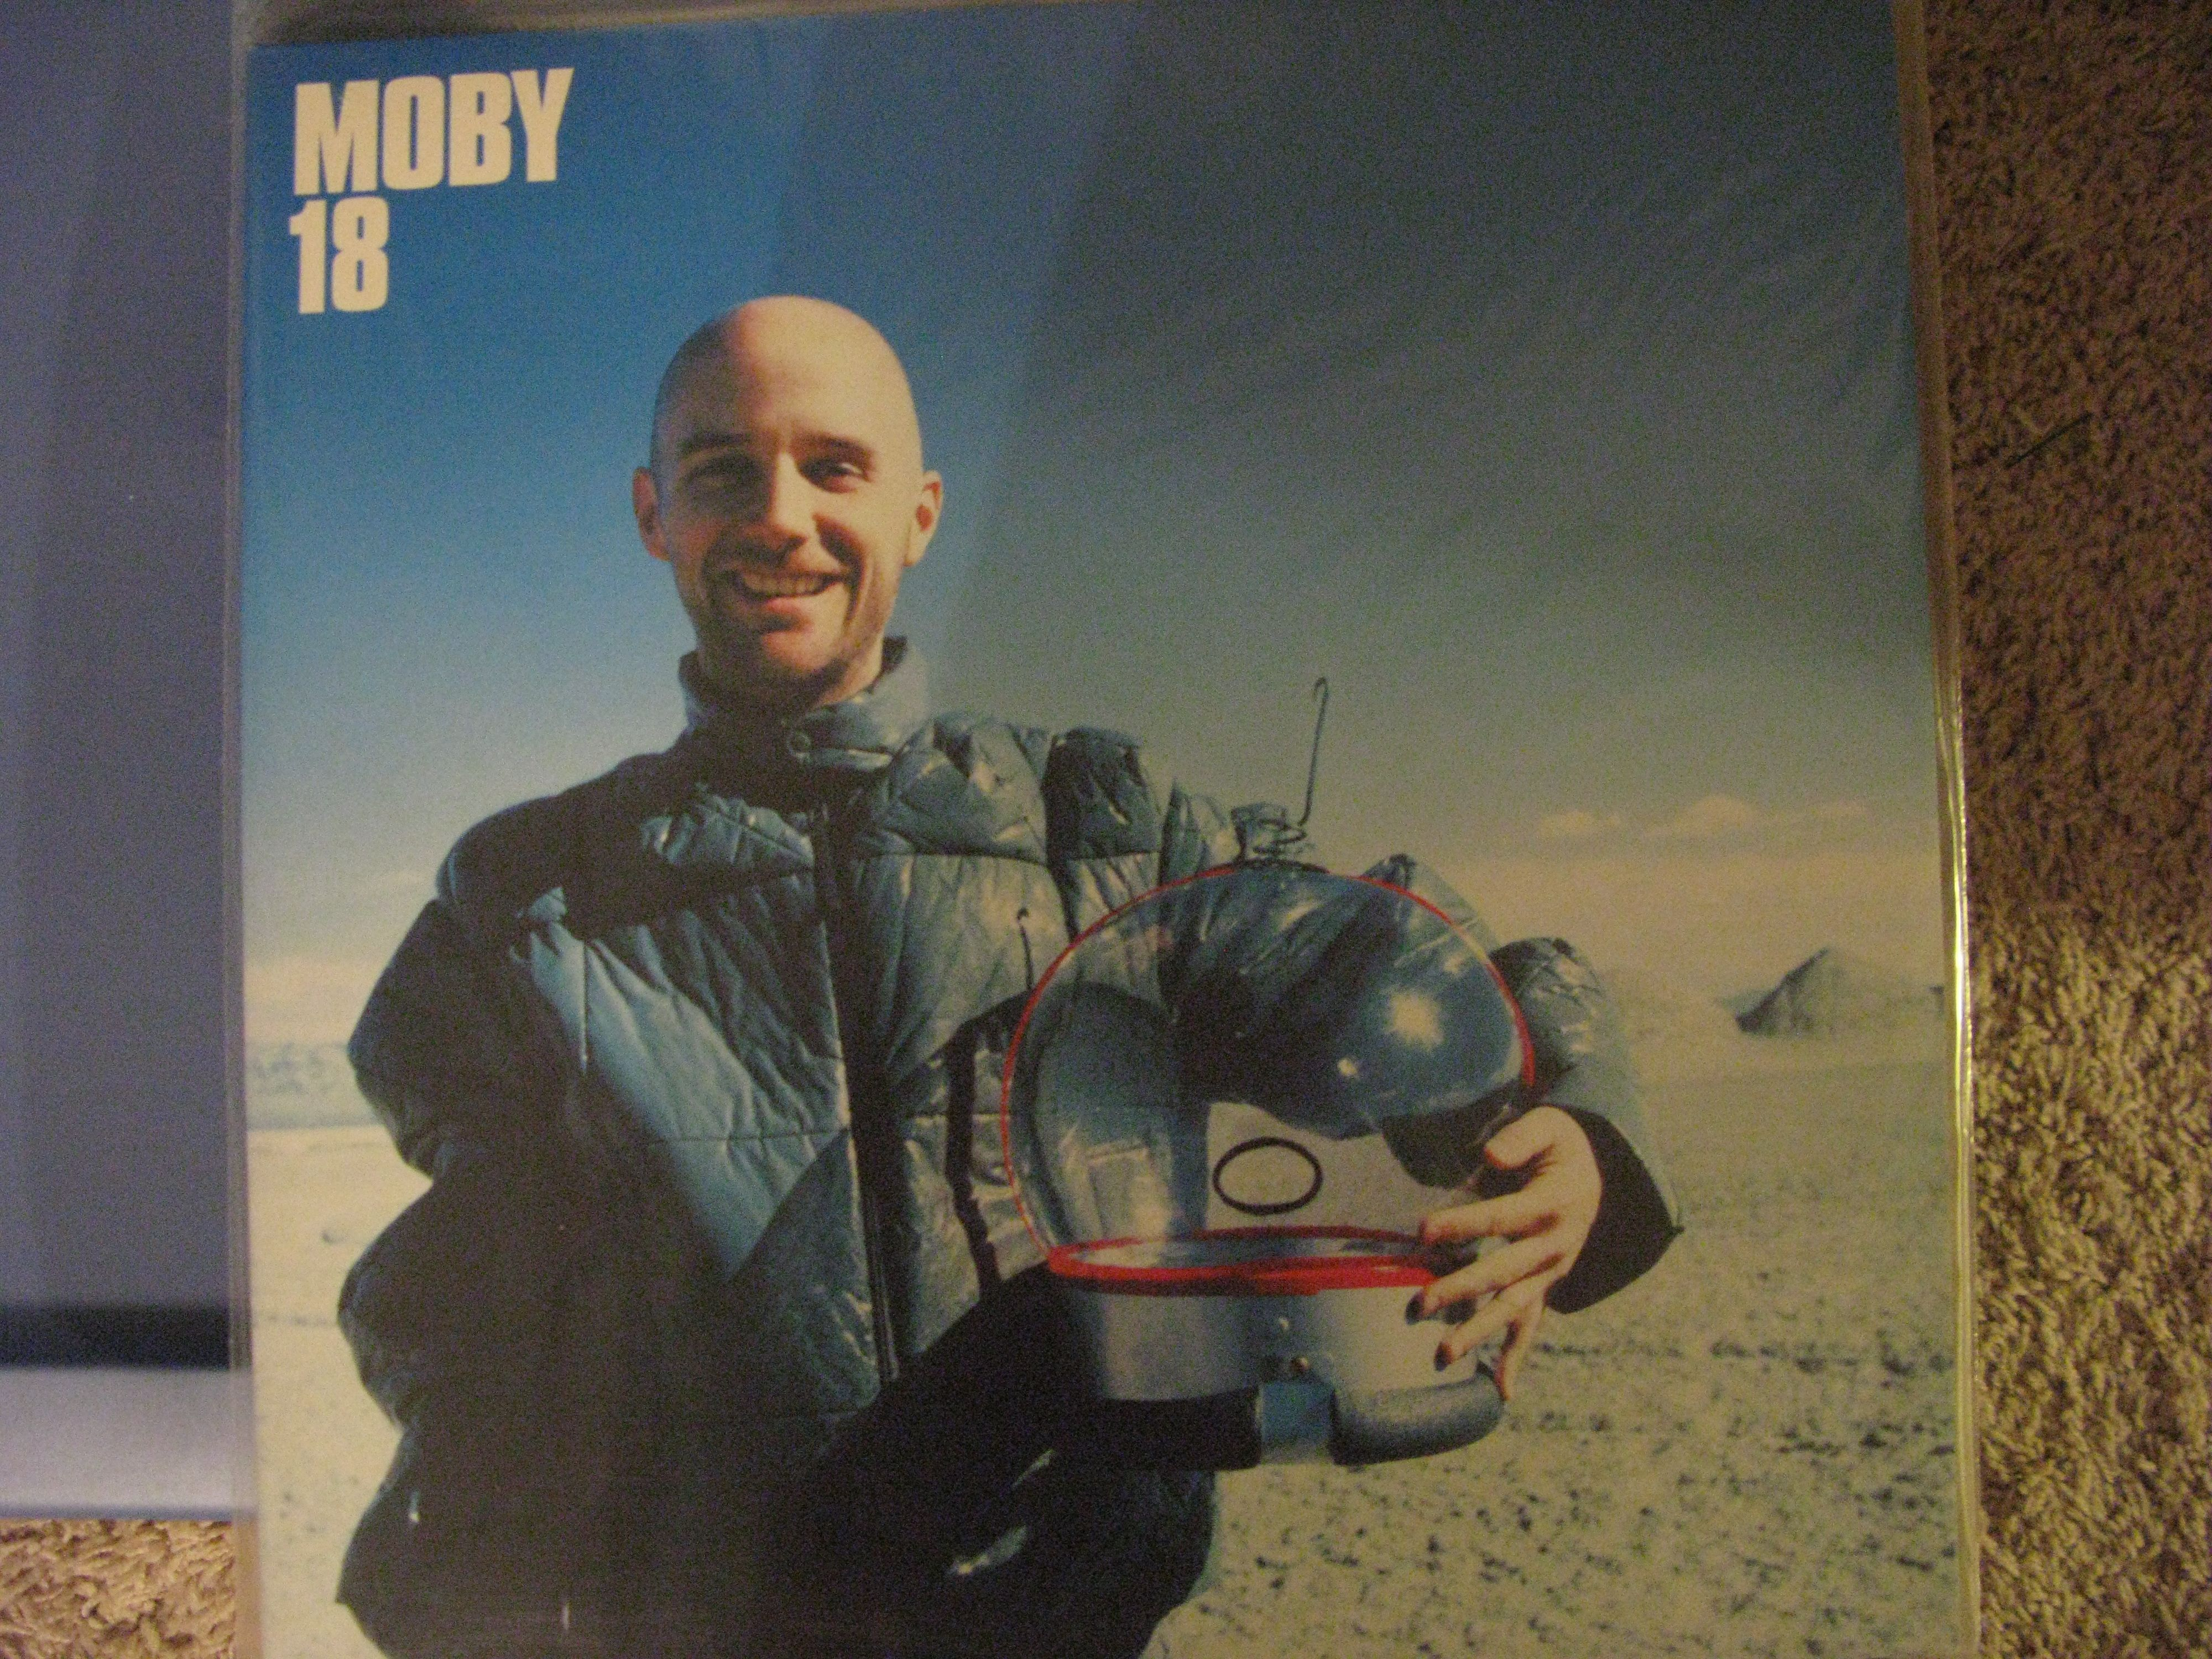 Moby 18 Vinyl Record Collection Painting Vinyl Records